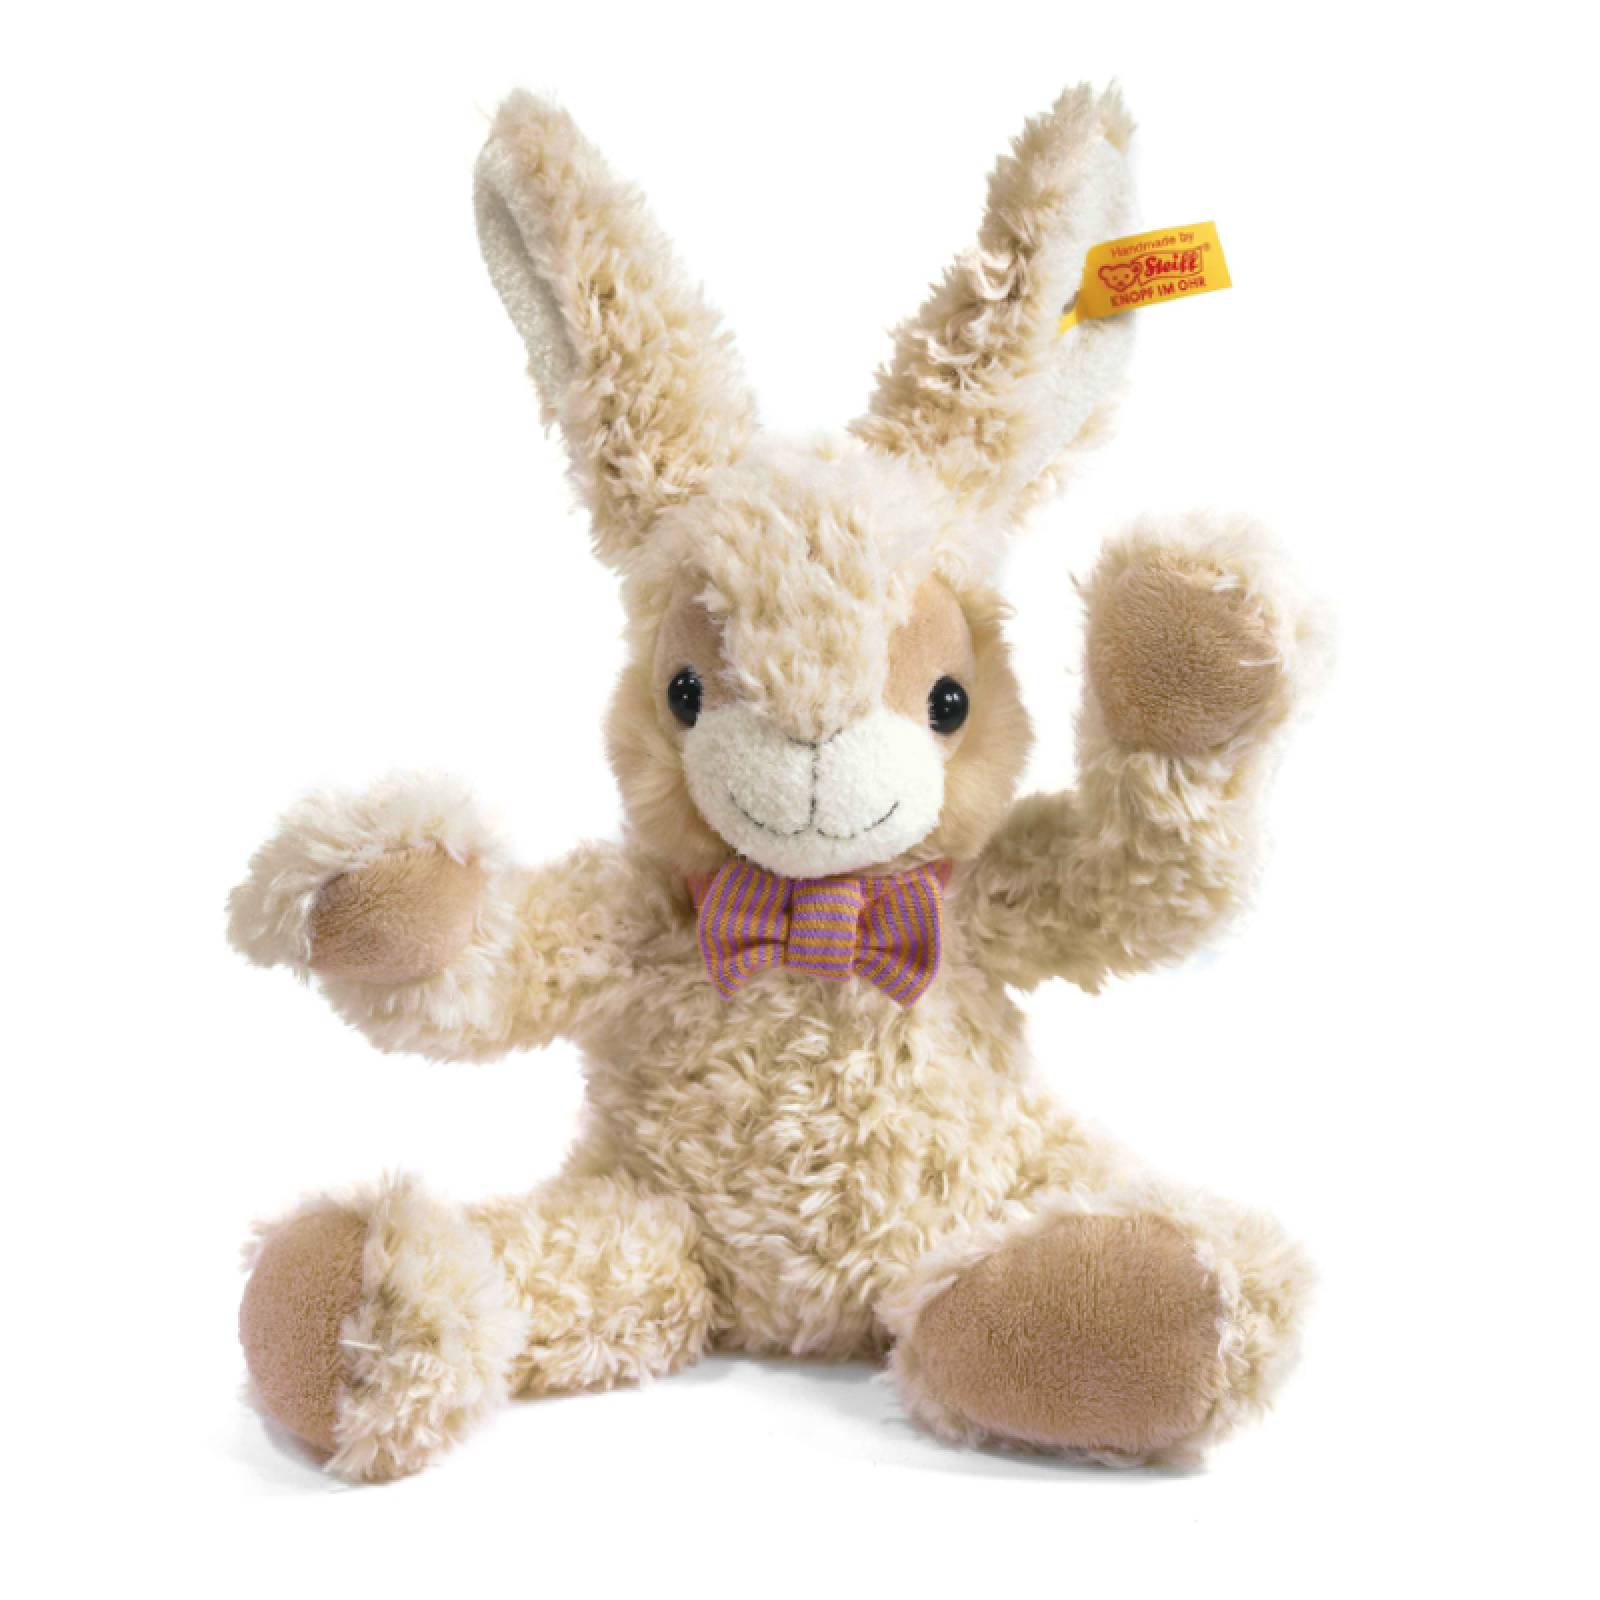 Manni Soft Toy Brown Rabbit 15cm By Steiff thumbnails